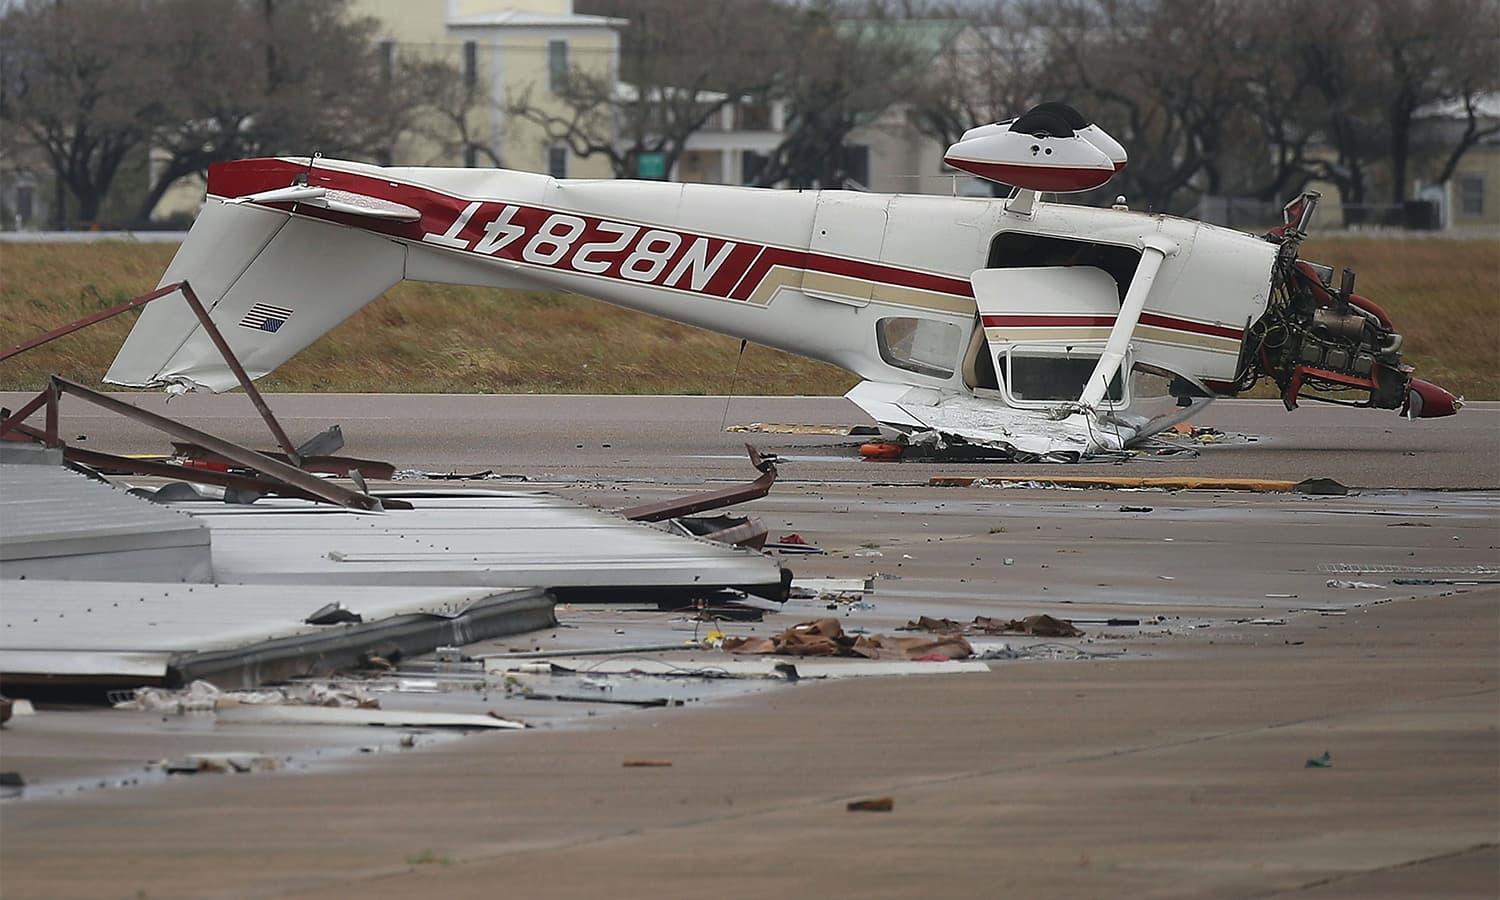 An airplane is seen flipped on its roof at the Aransas County Airport after Hurricane Harvey passed through. — AFP